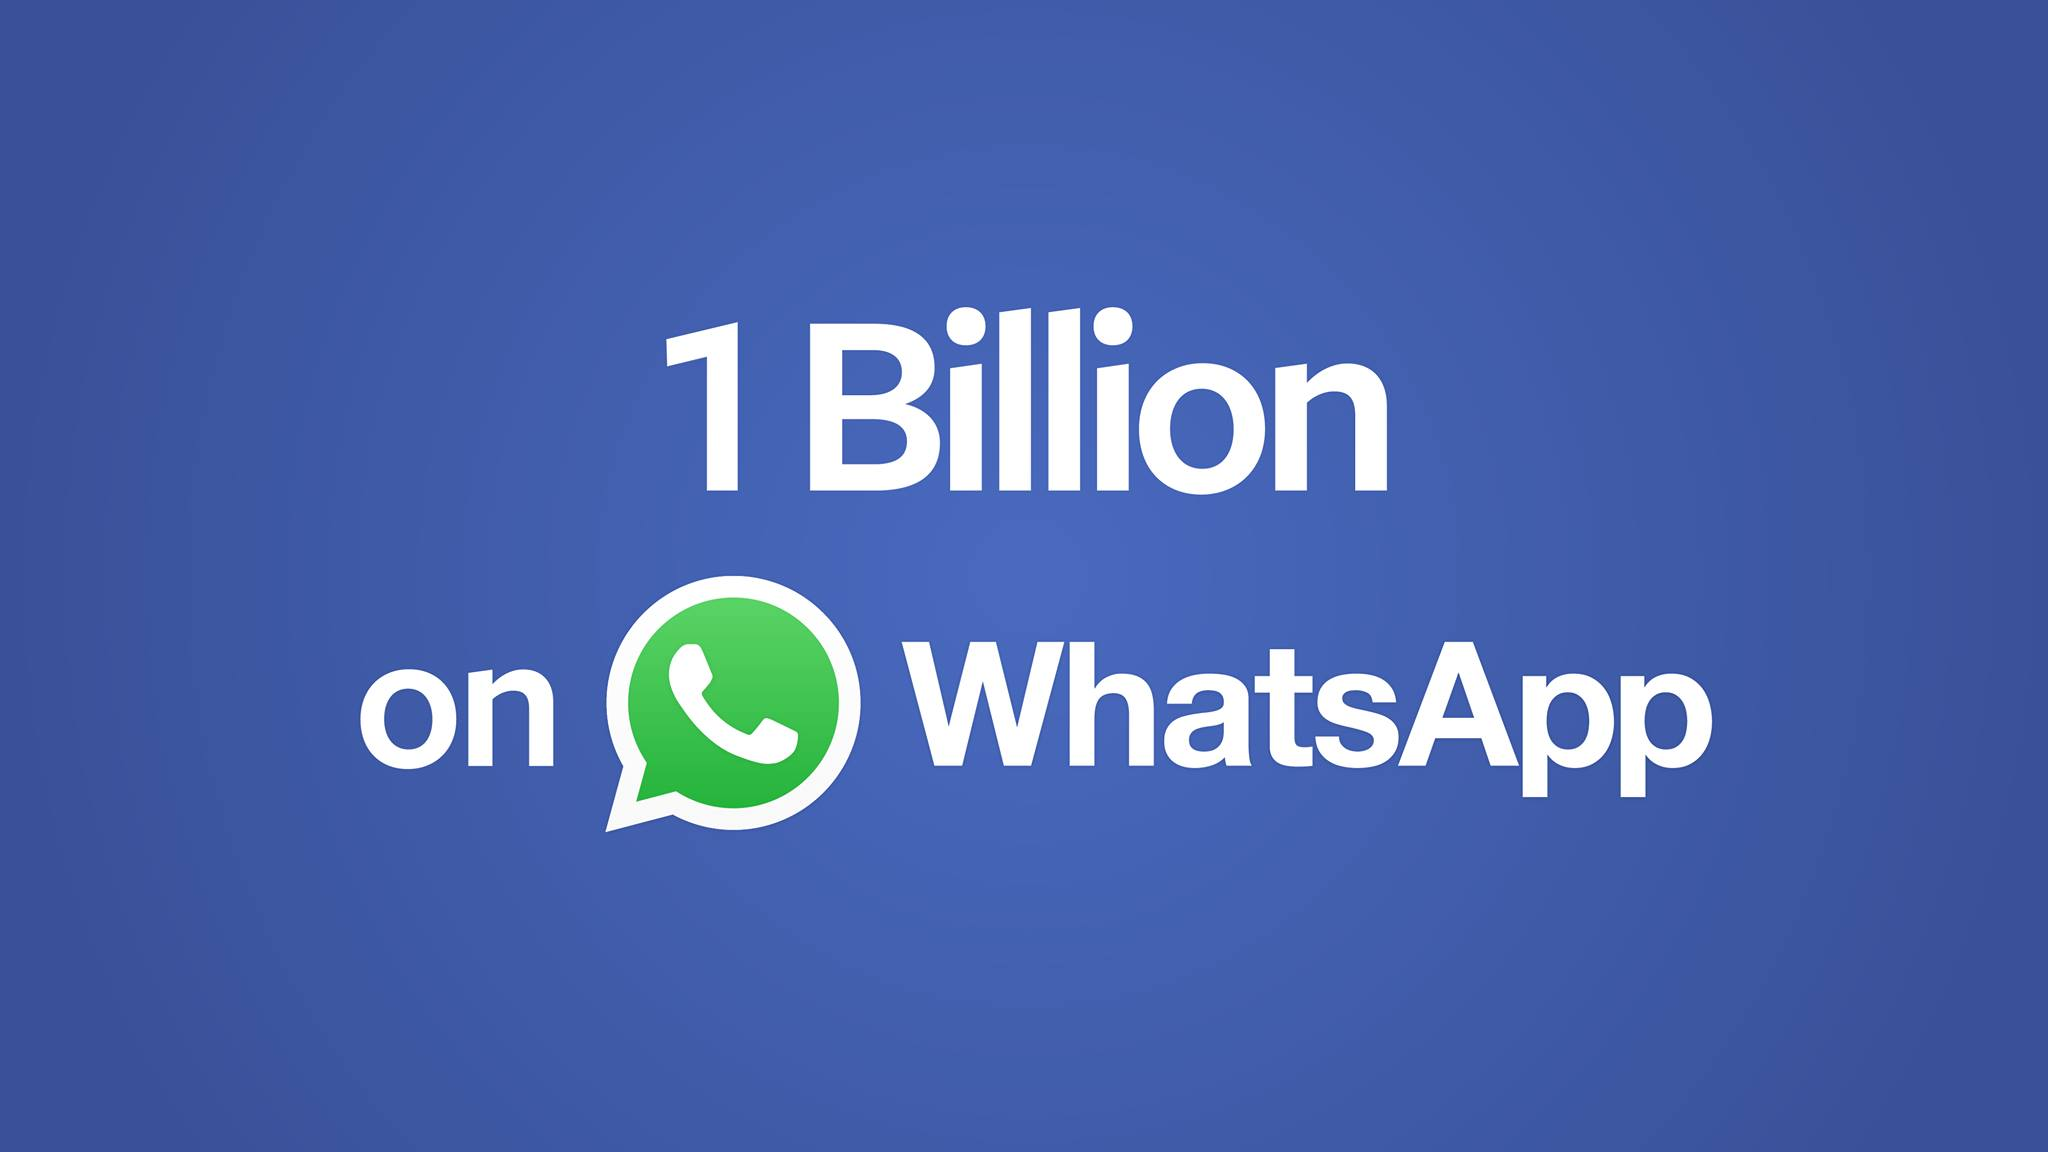 http://techcabal.com/wp-content/uploads/2016/02/whatsapp-1-billion.jpg